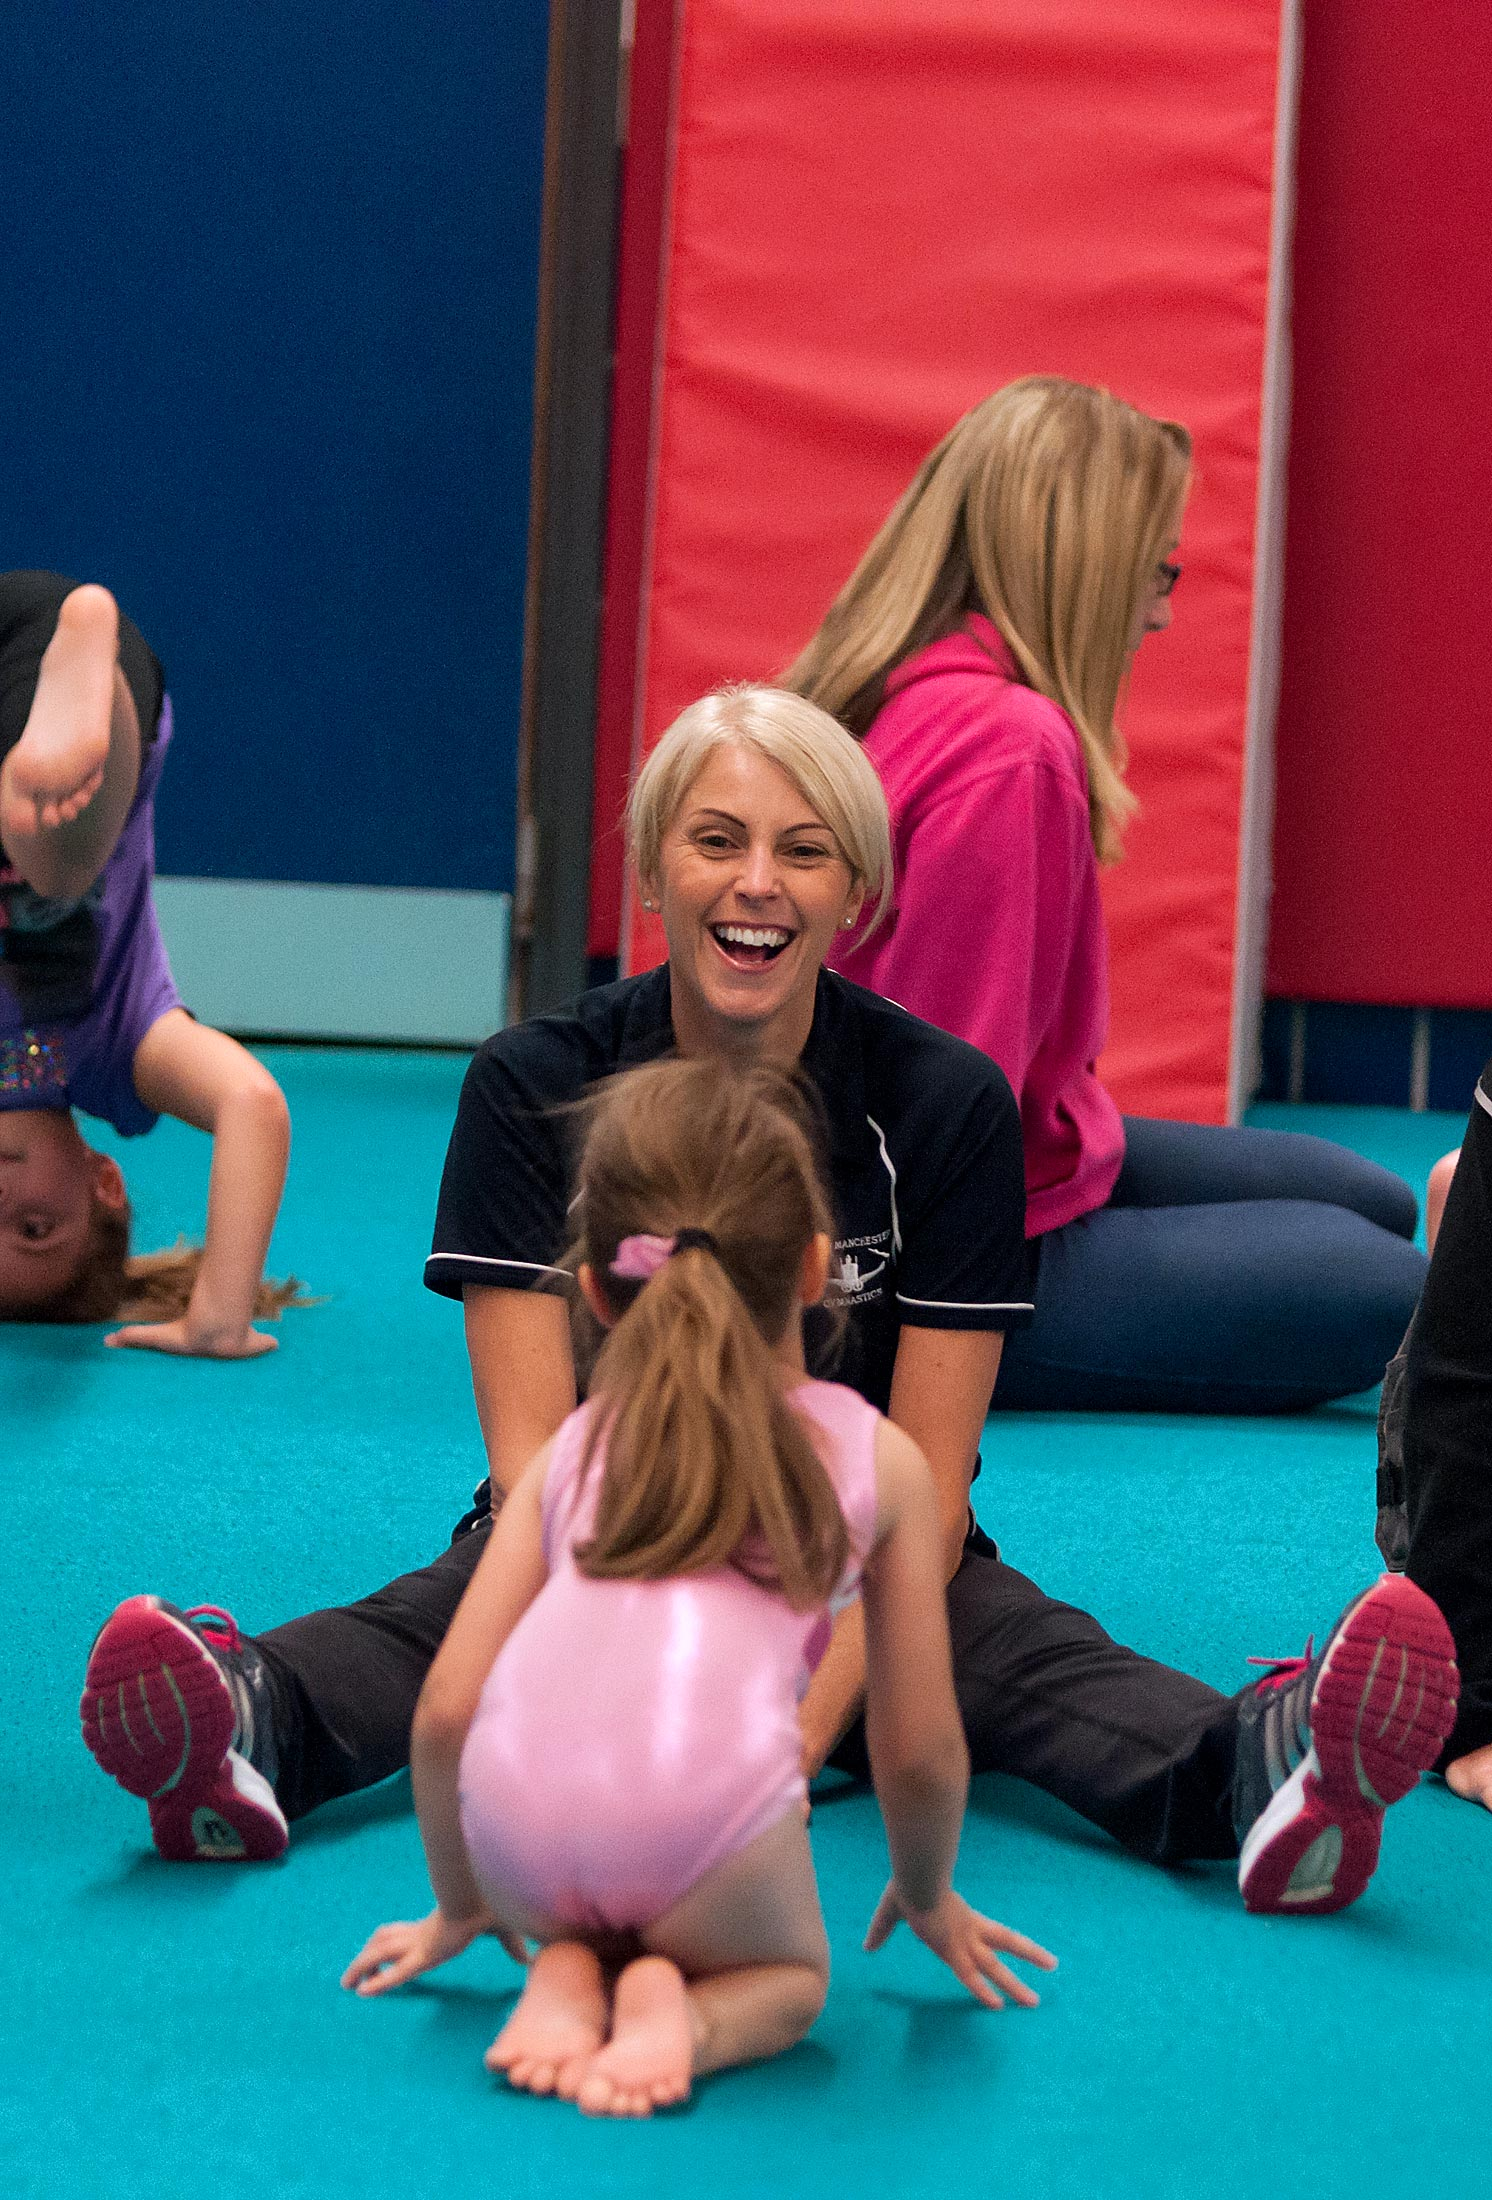 gymnast with coach smiling